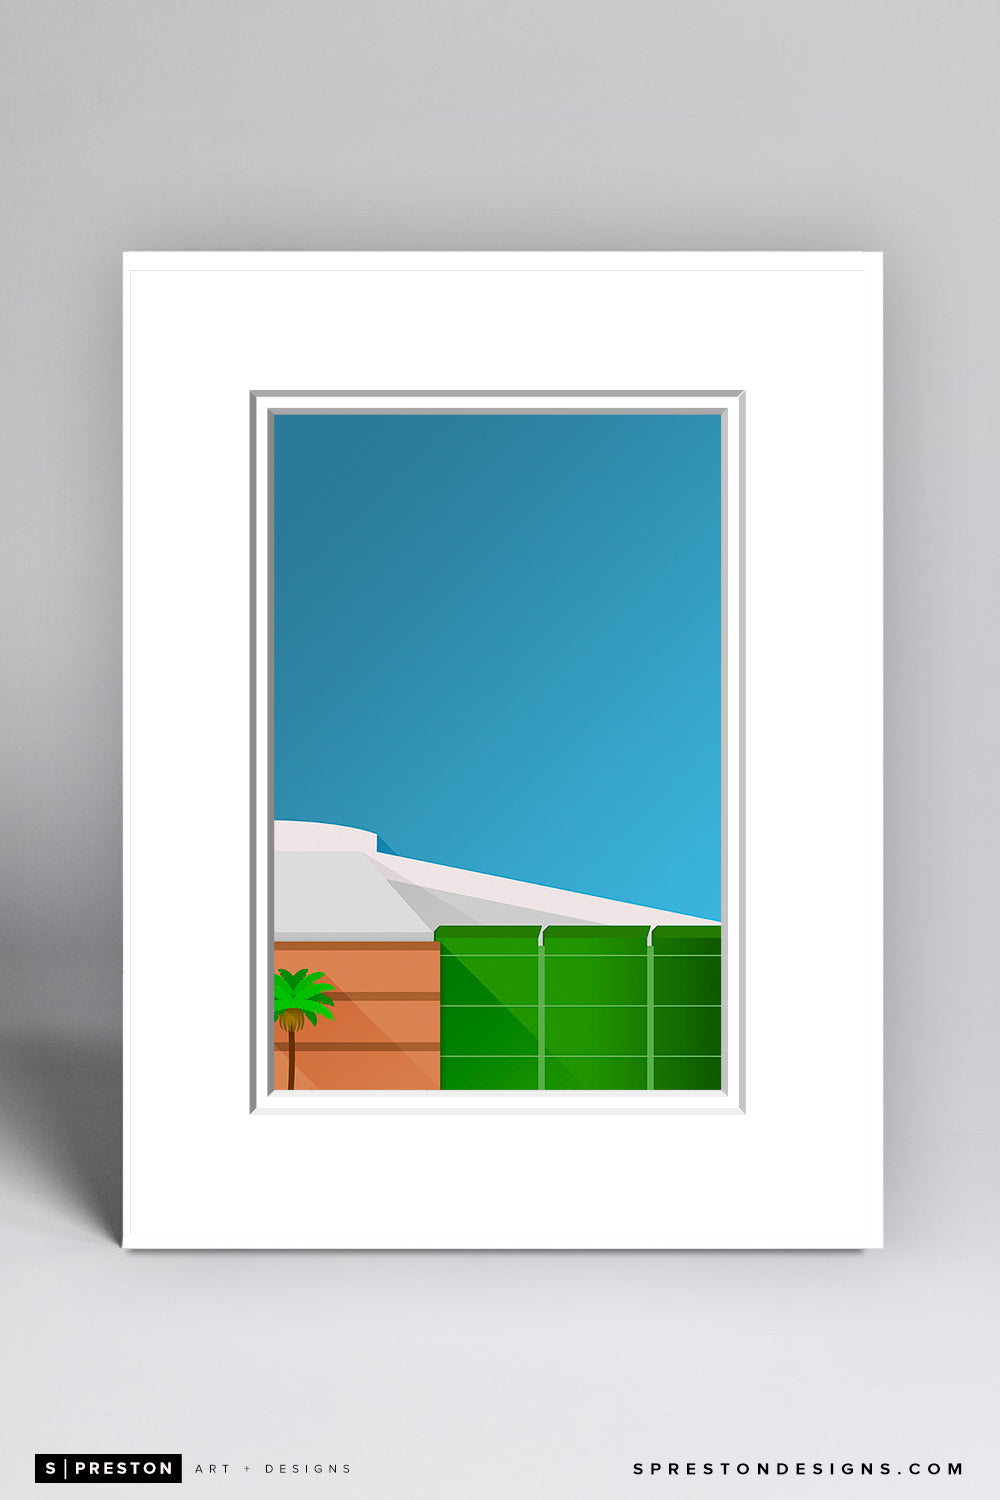 Minimalist Honda Center Matted Art Poster - CLEARANCE